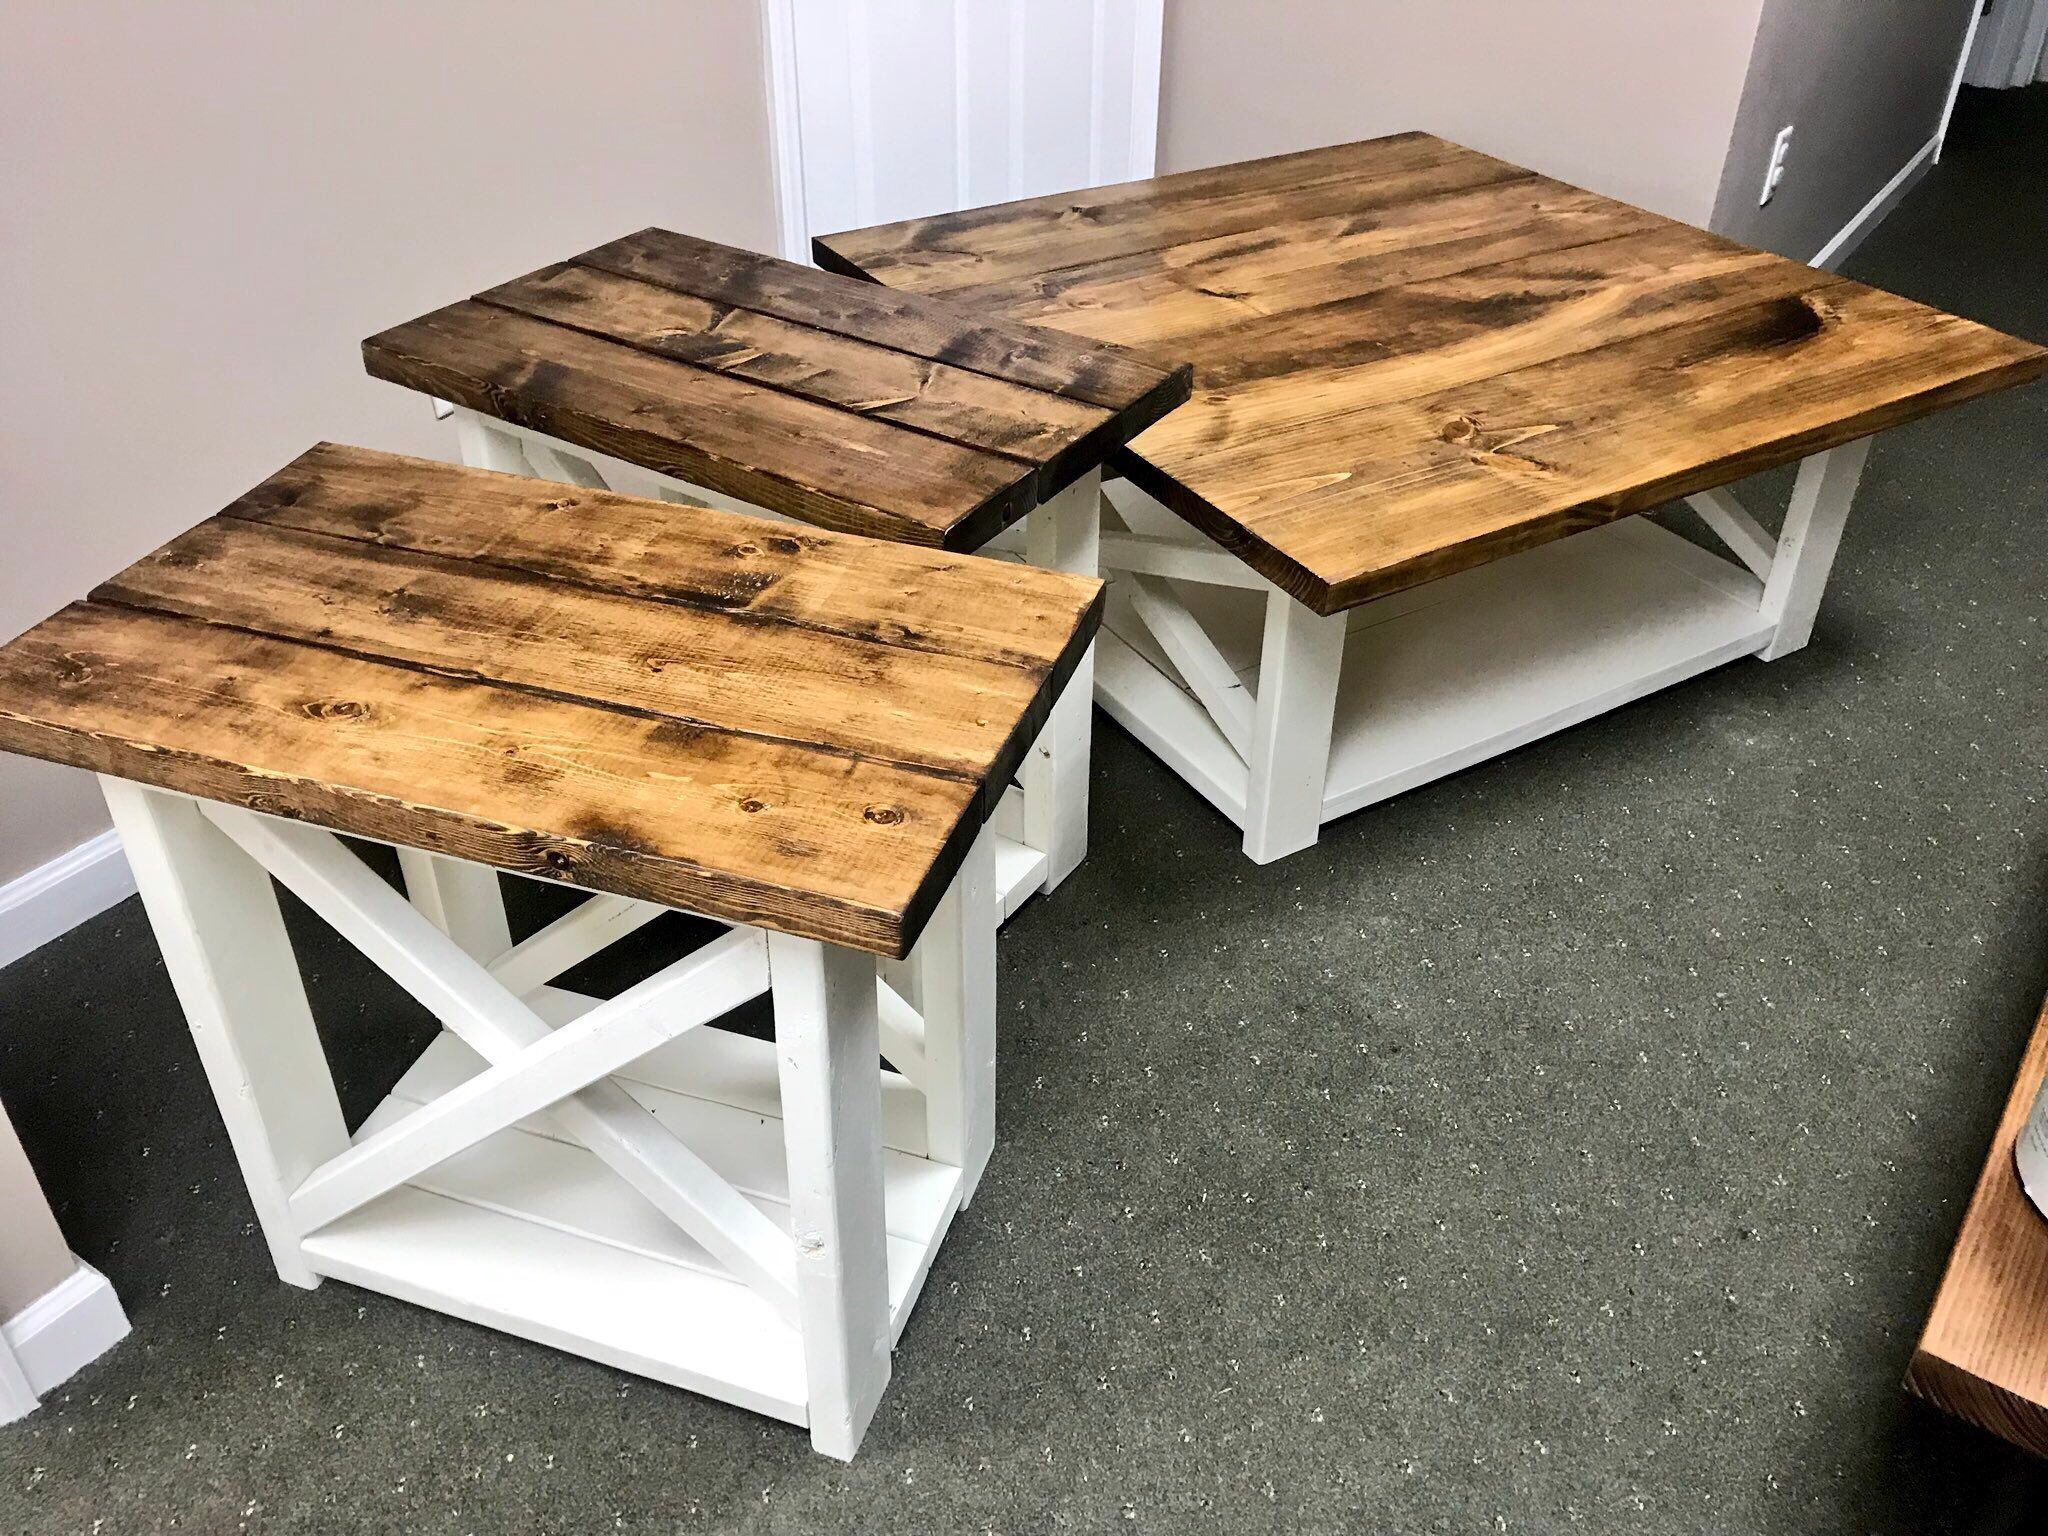 Rustic Living Room Set, Large Farmhouse Coffee Table With